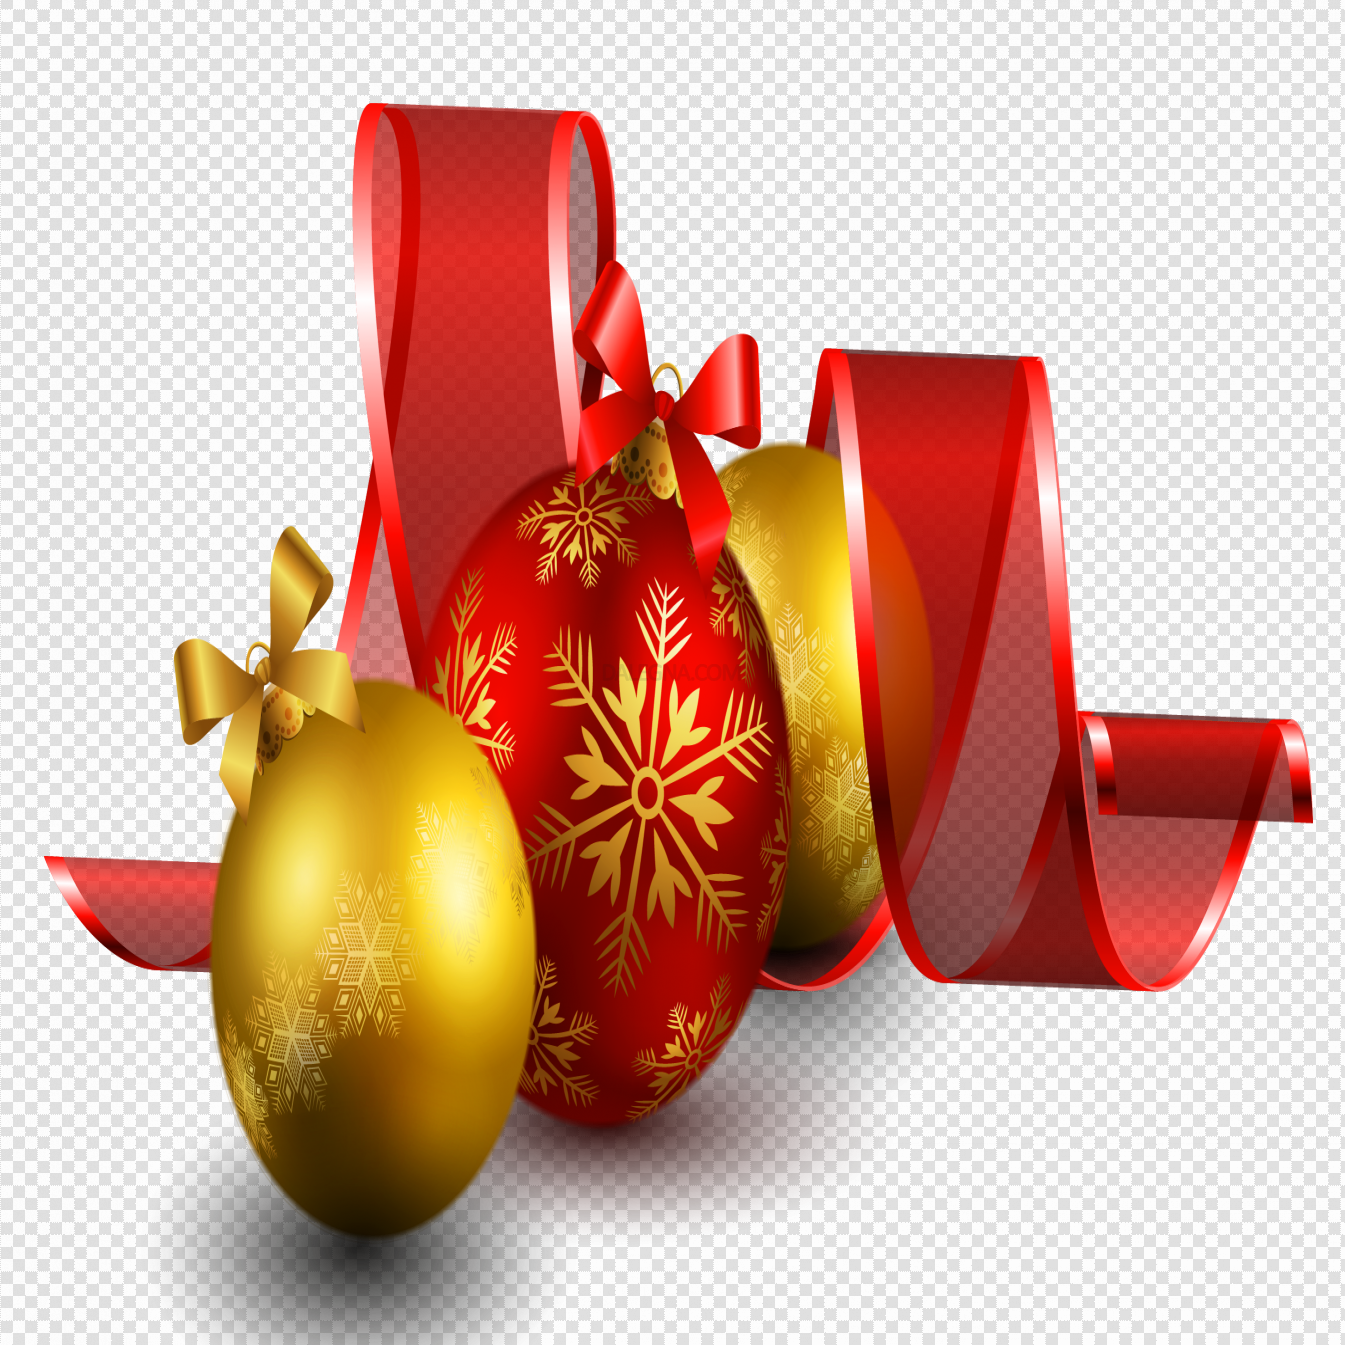 Red Christmas Ornaments PNG Transparent